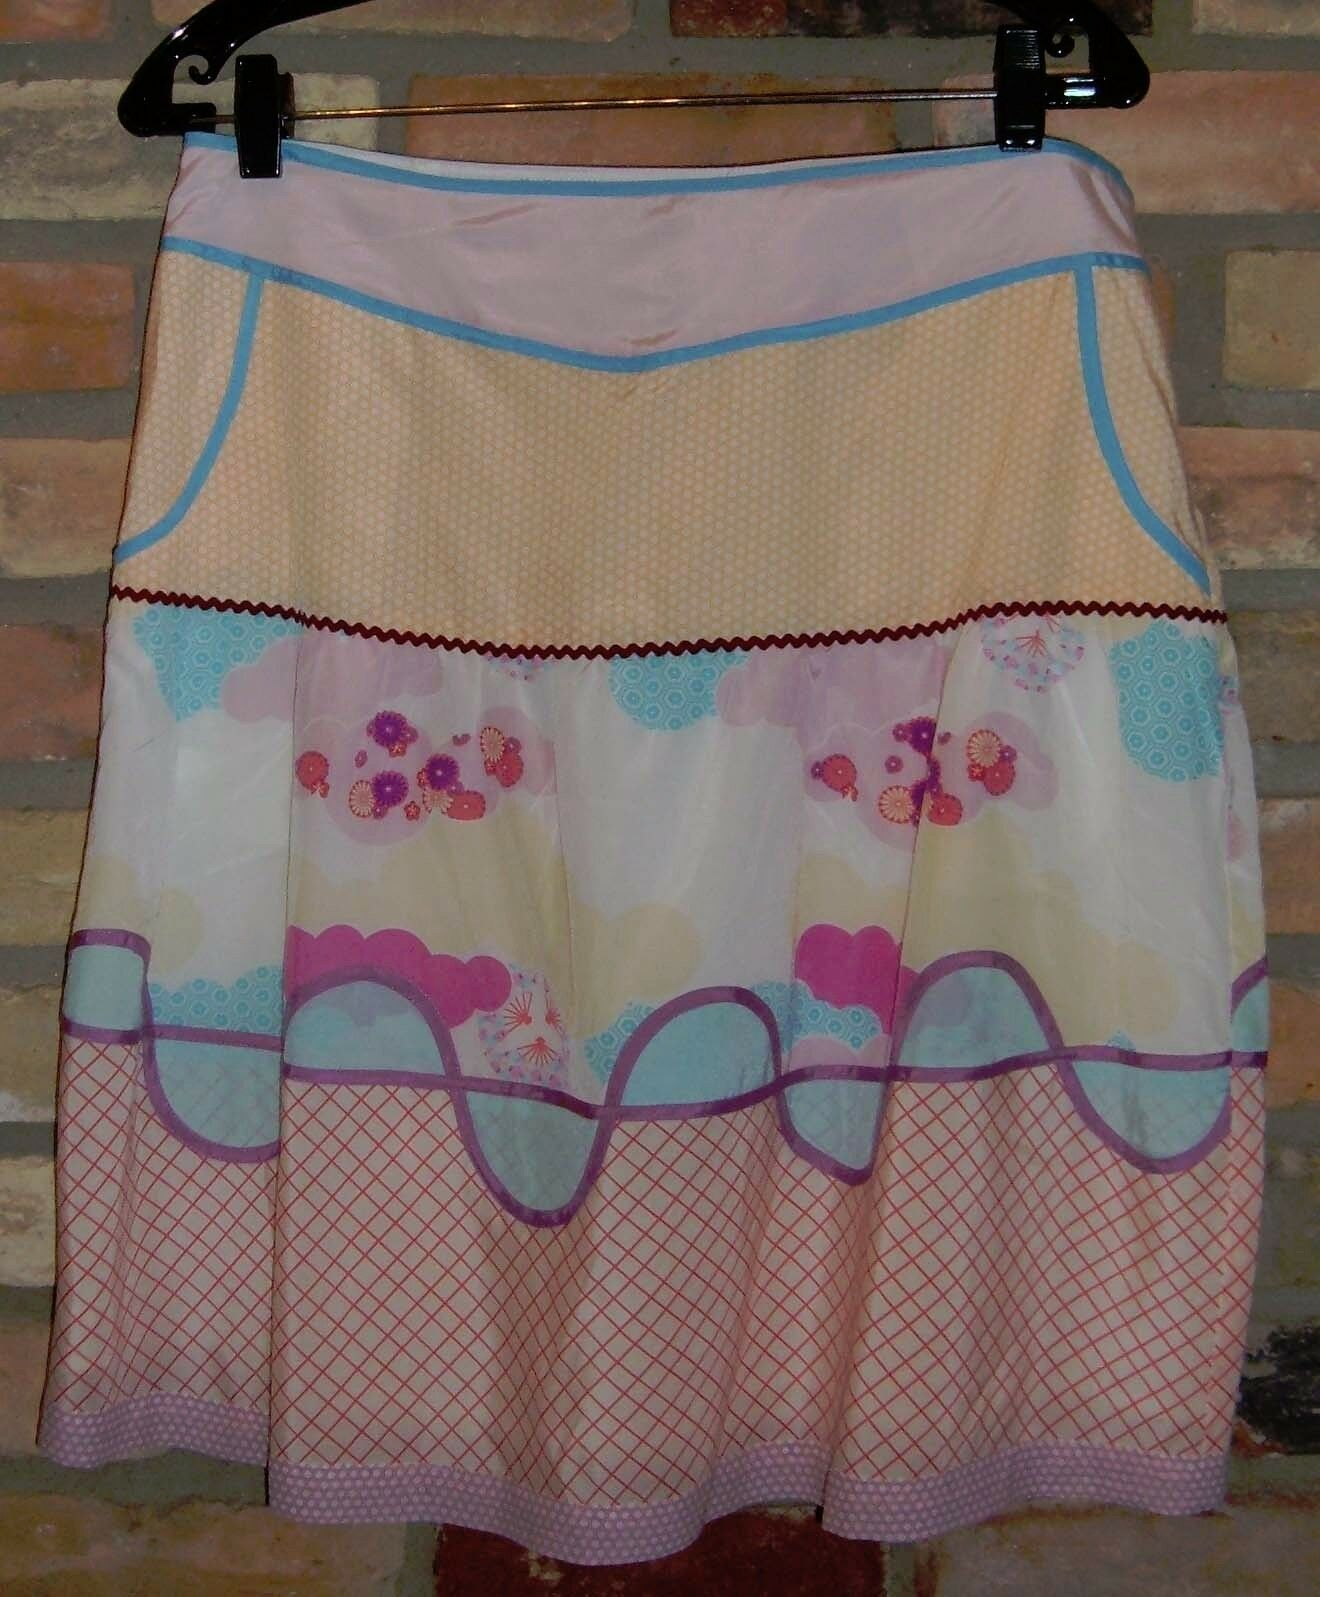 Penguin by Munsingwear multicolor retro vintage silk cotton blend skirt 8 NWT